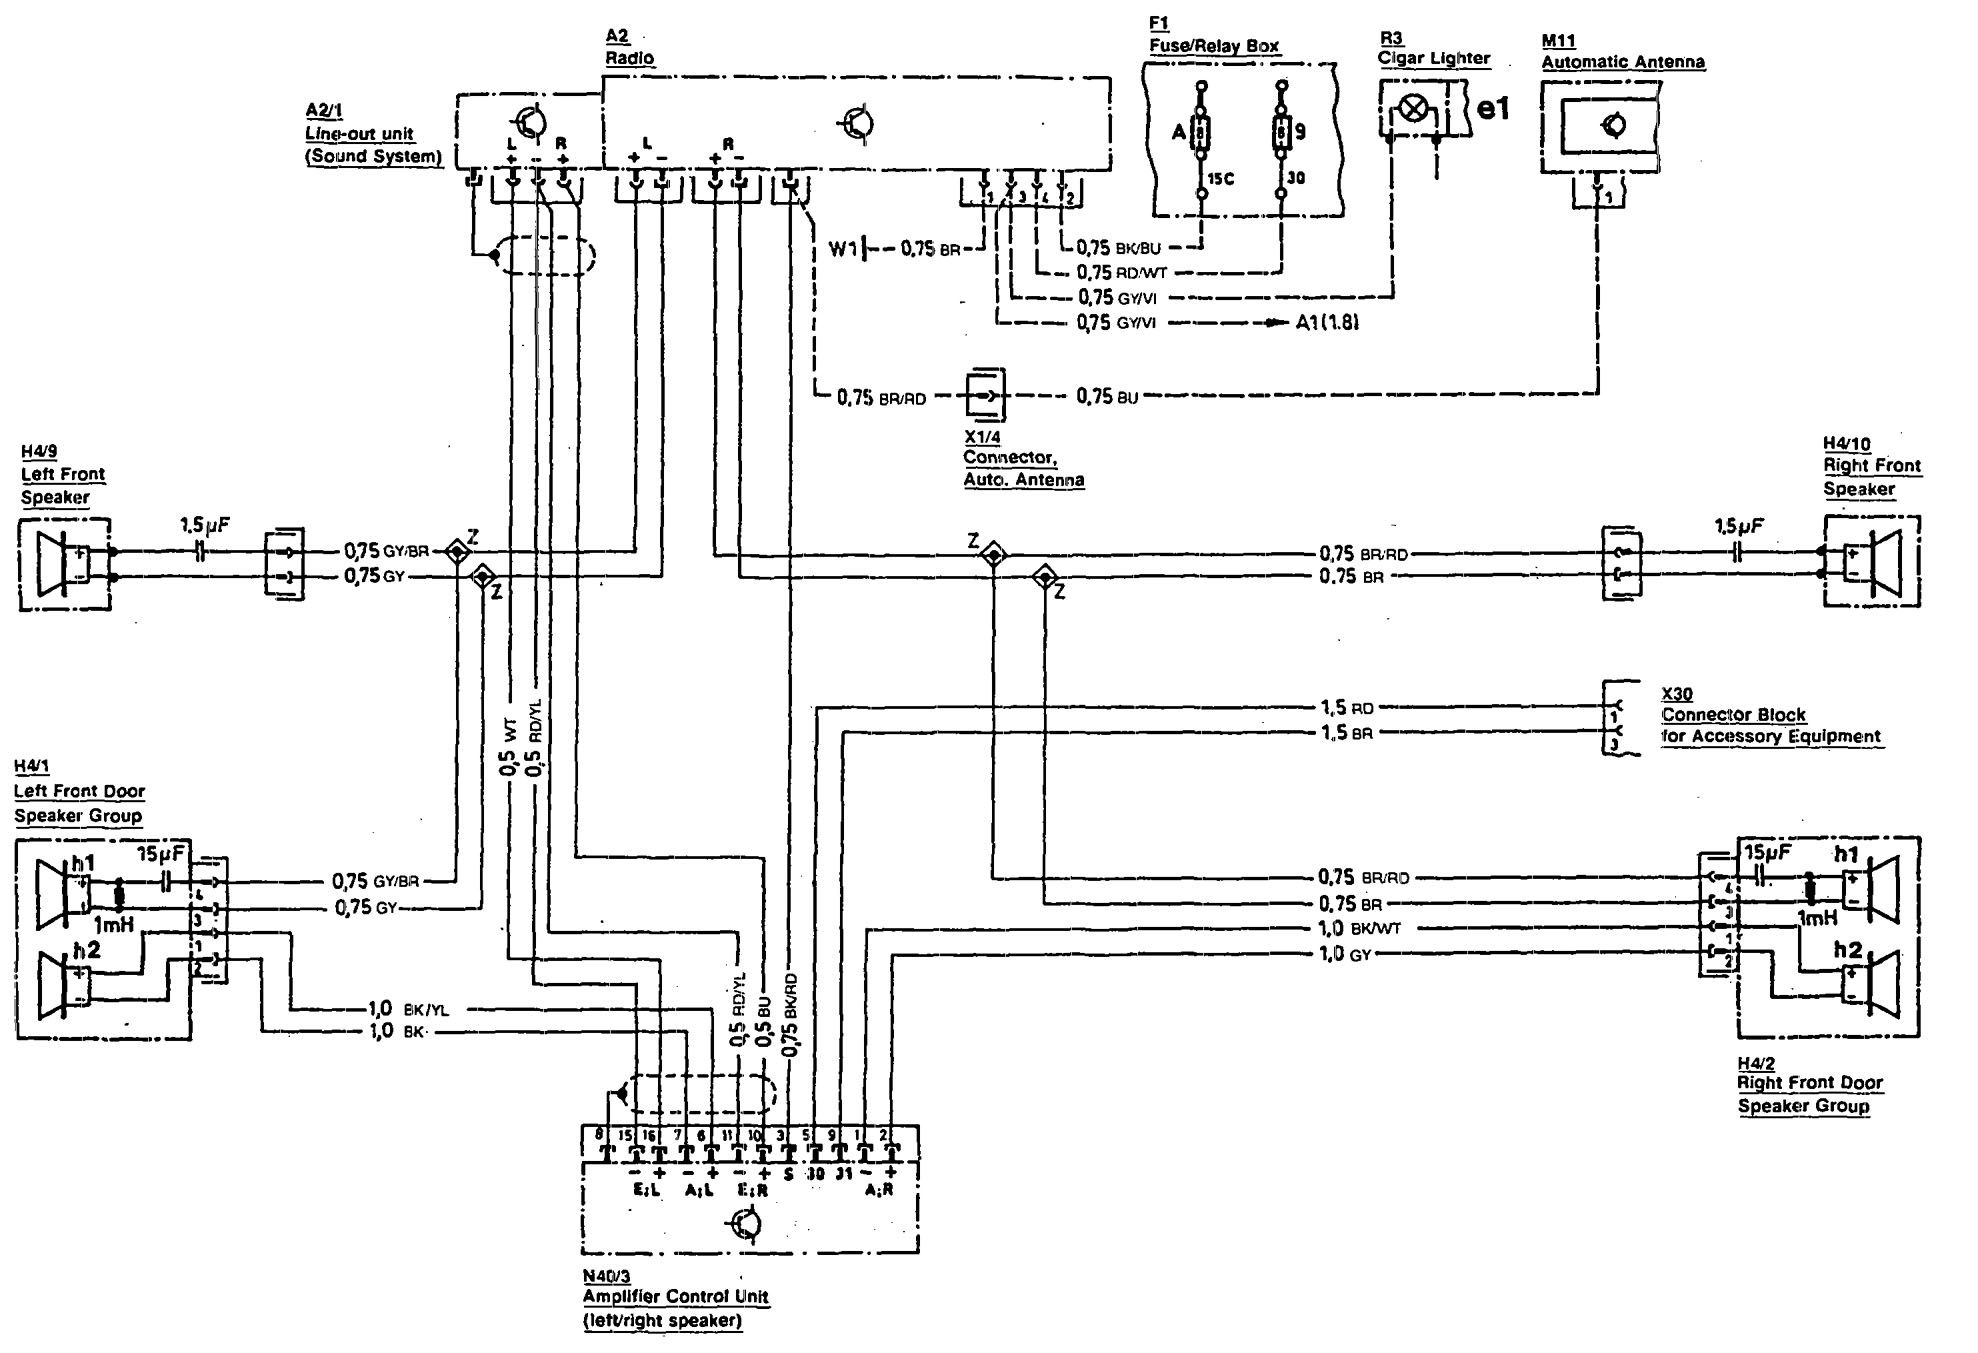 Mercedes 300sl Wiring Diagram Electrical Diagrams For Benz Car Radio 1991 300se Dayton